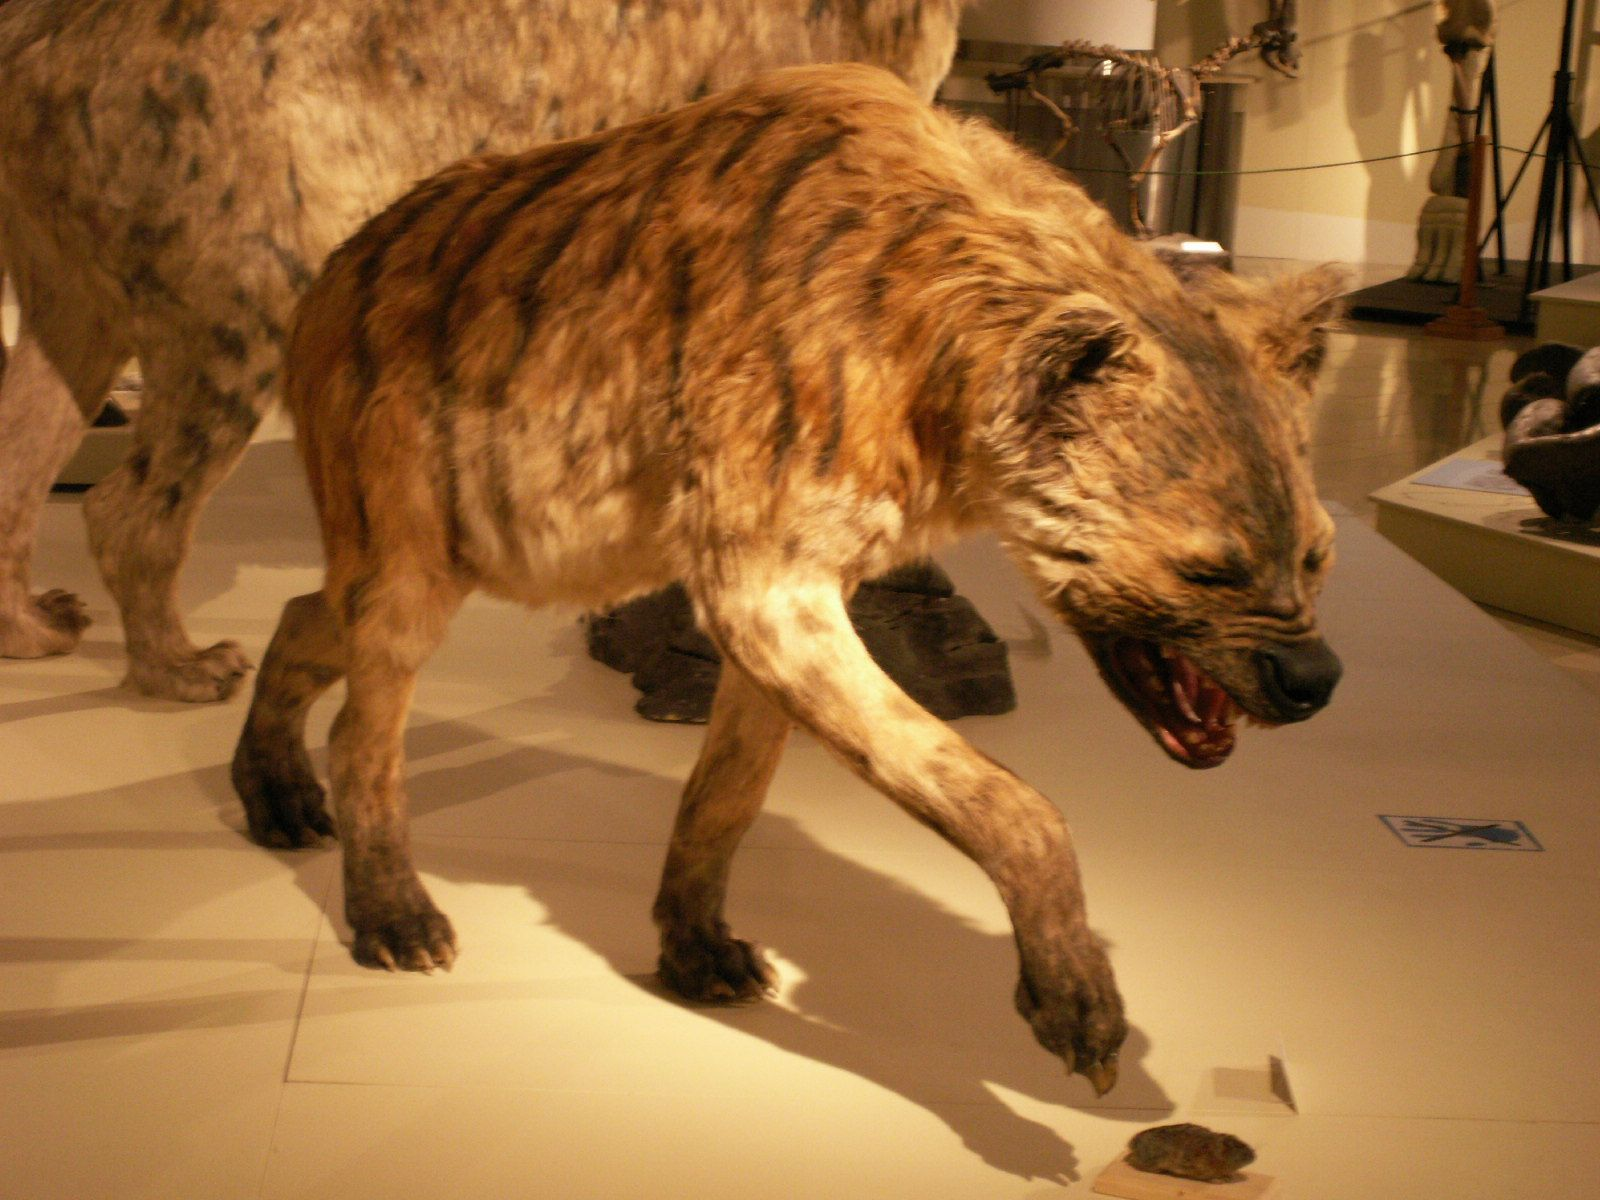 this is a prehistoric hyena that lived over 2 million years ago